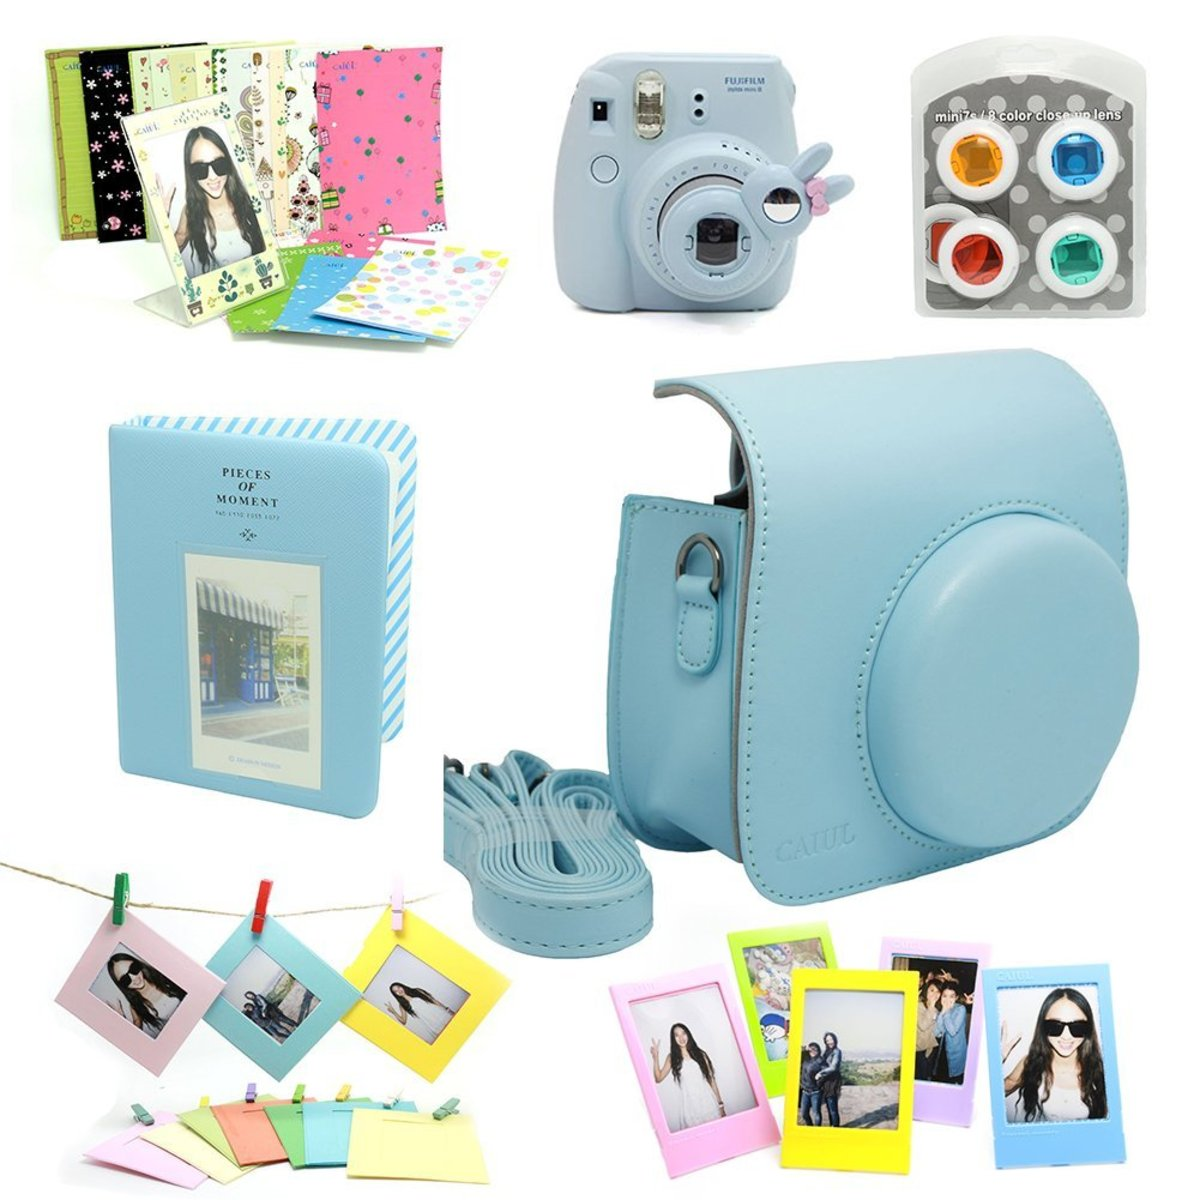 Fujifilm Instax Mini 8 Instant Film Camera Accessory Bundle